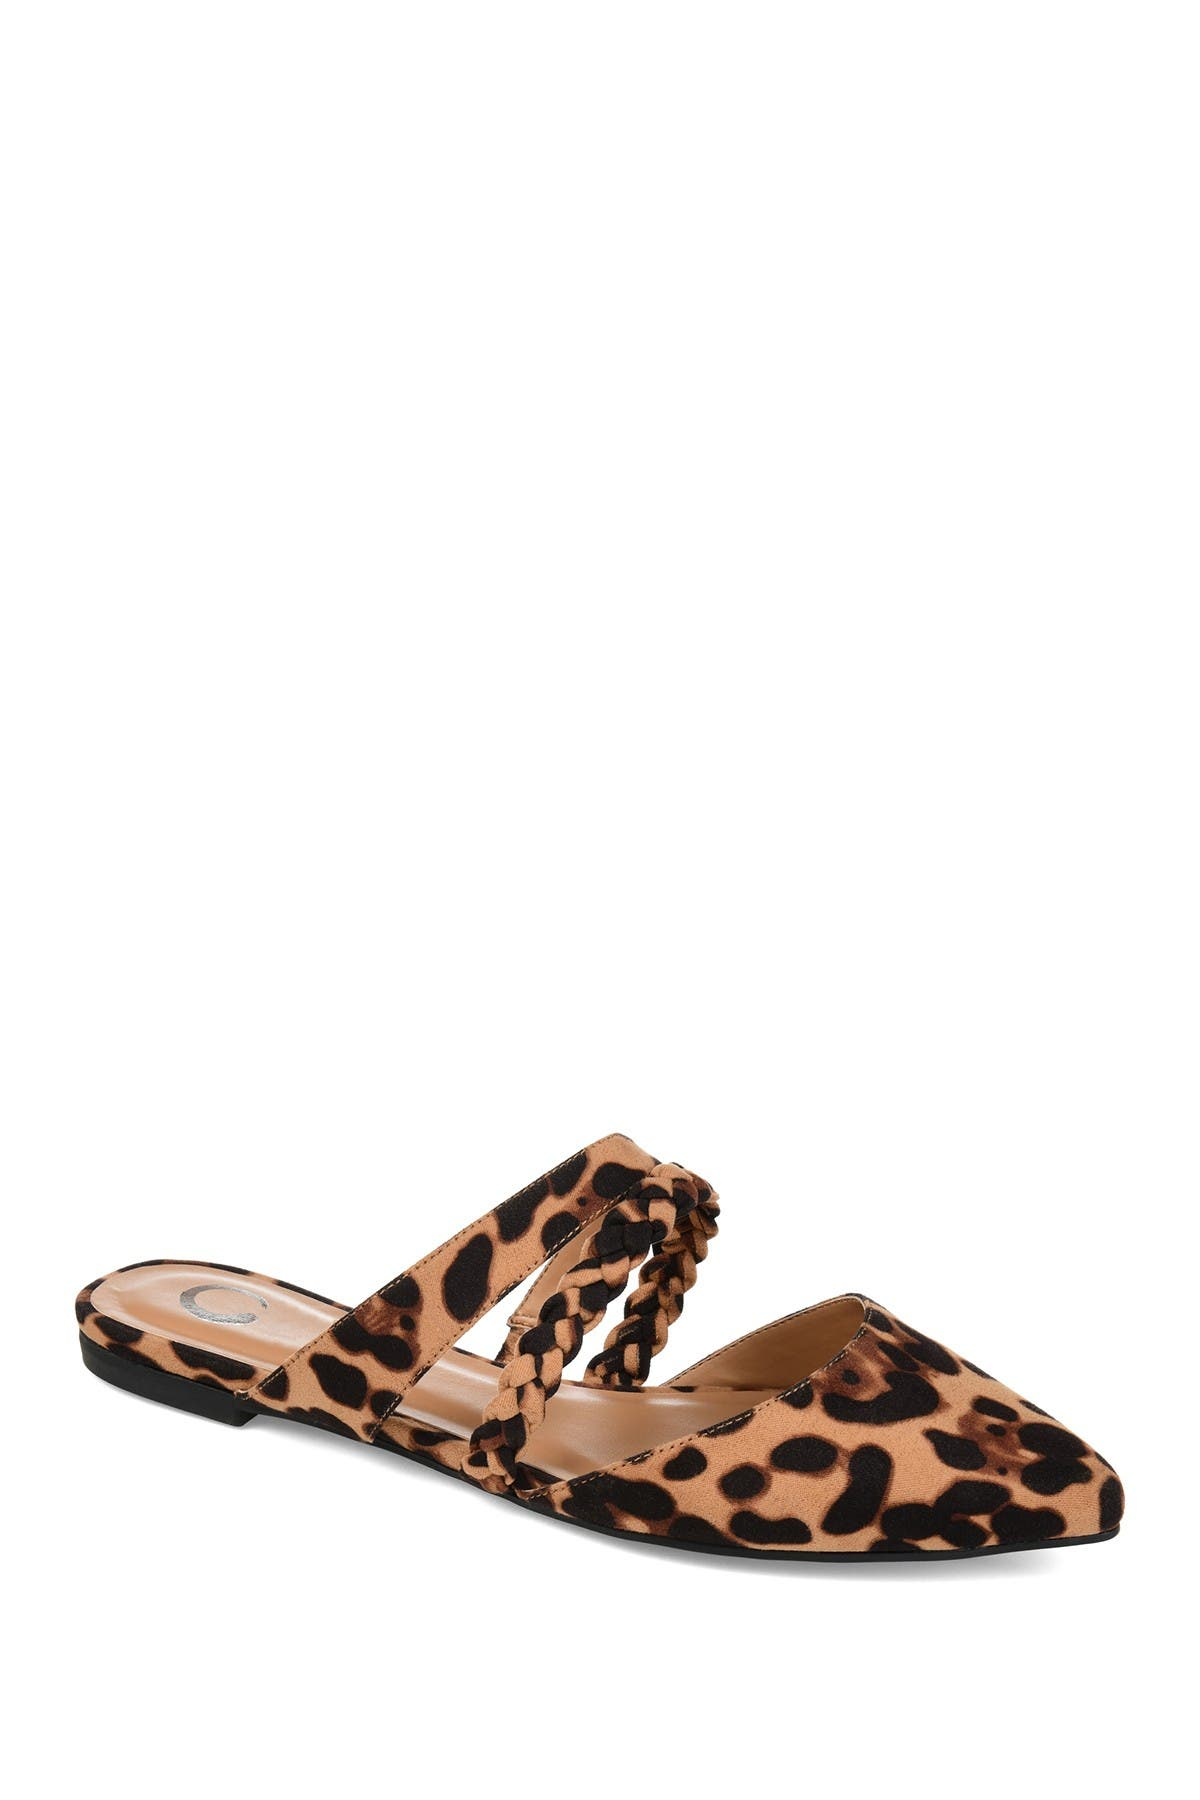 Image of JOURNEE Collection Olivea Braided Strap Mule